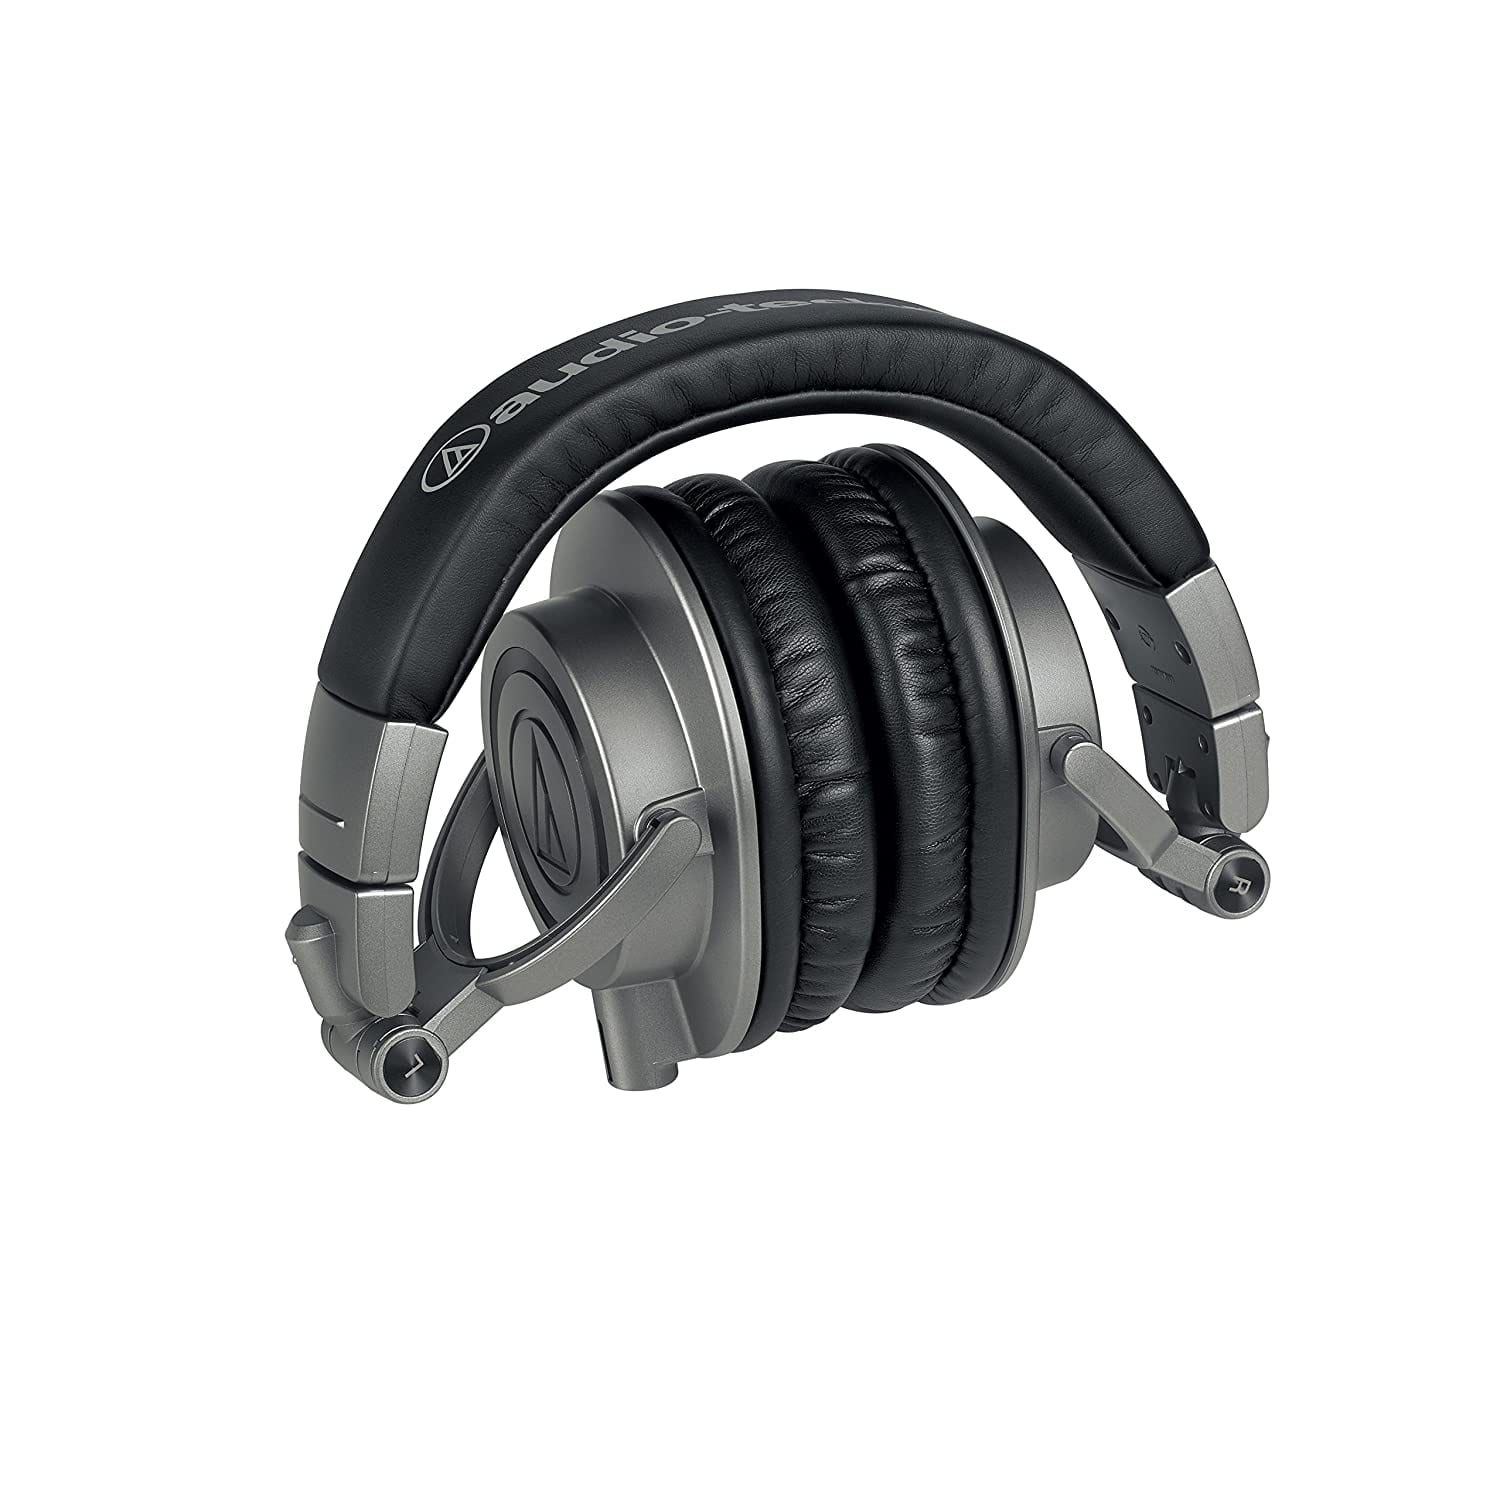 Audio-Technica ATH-M50xBT Wireless Bluetooth Over-Ear Headphones, Black, With Exceptional Clarity, Comfort, And 40 hr Battery $125